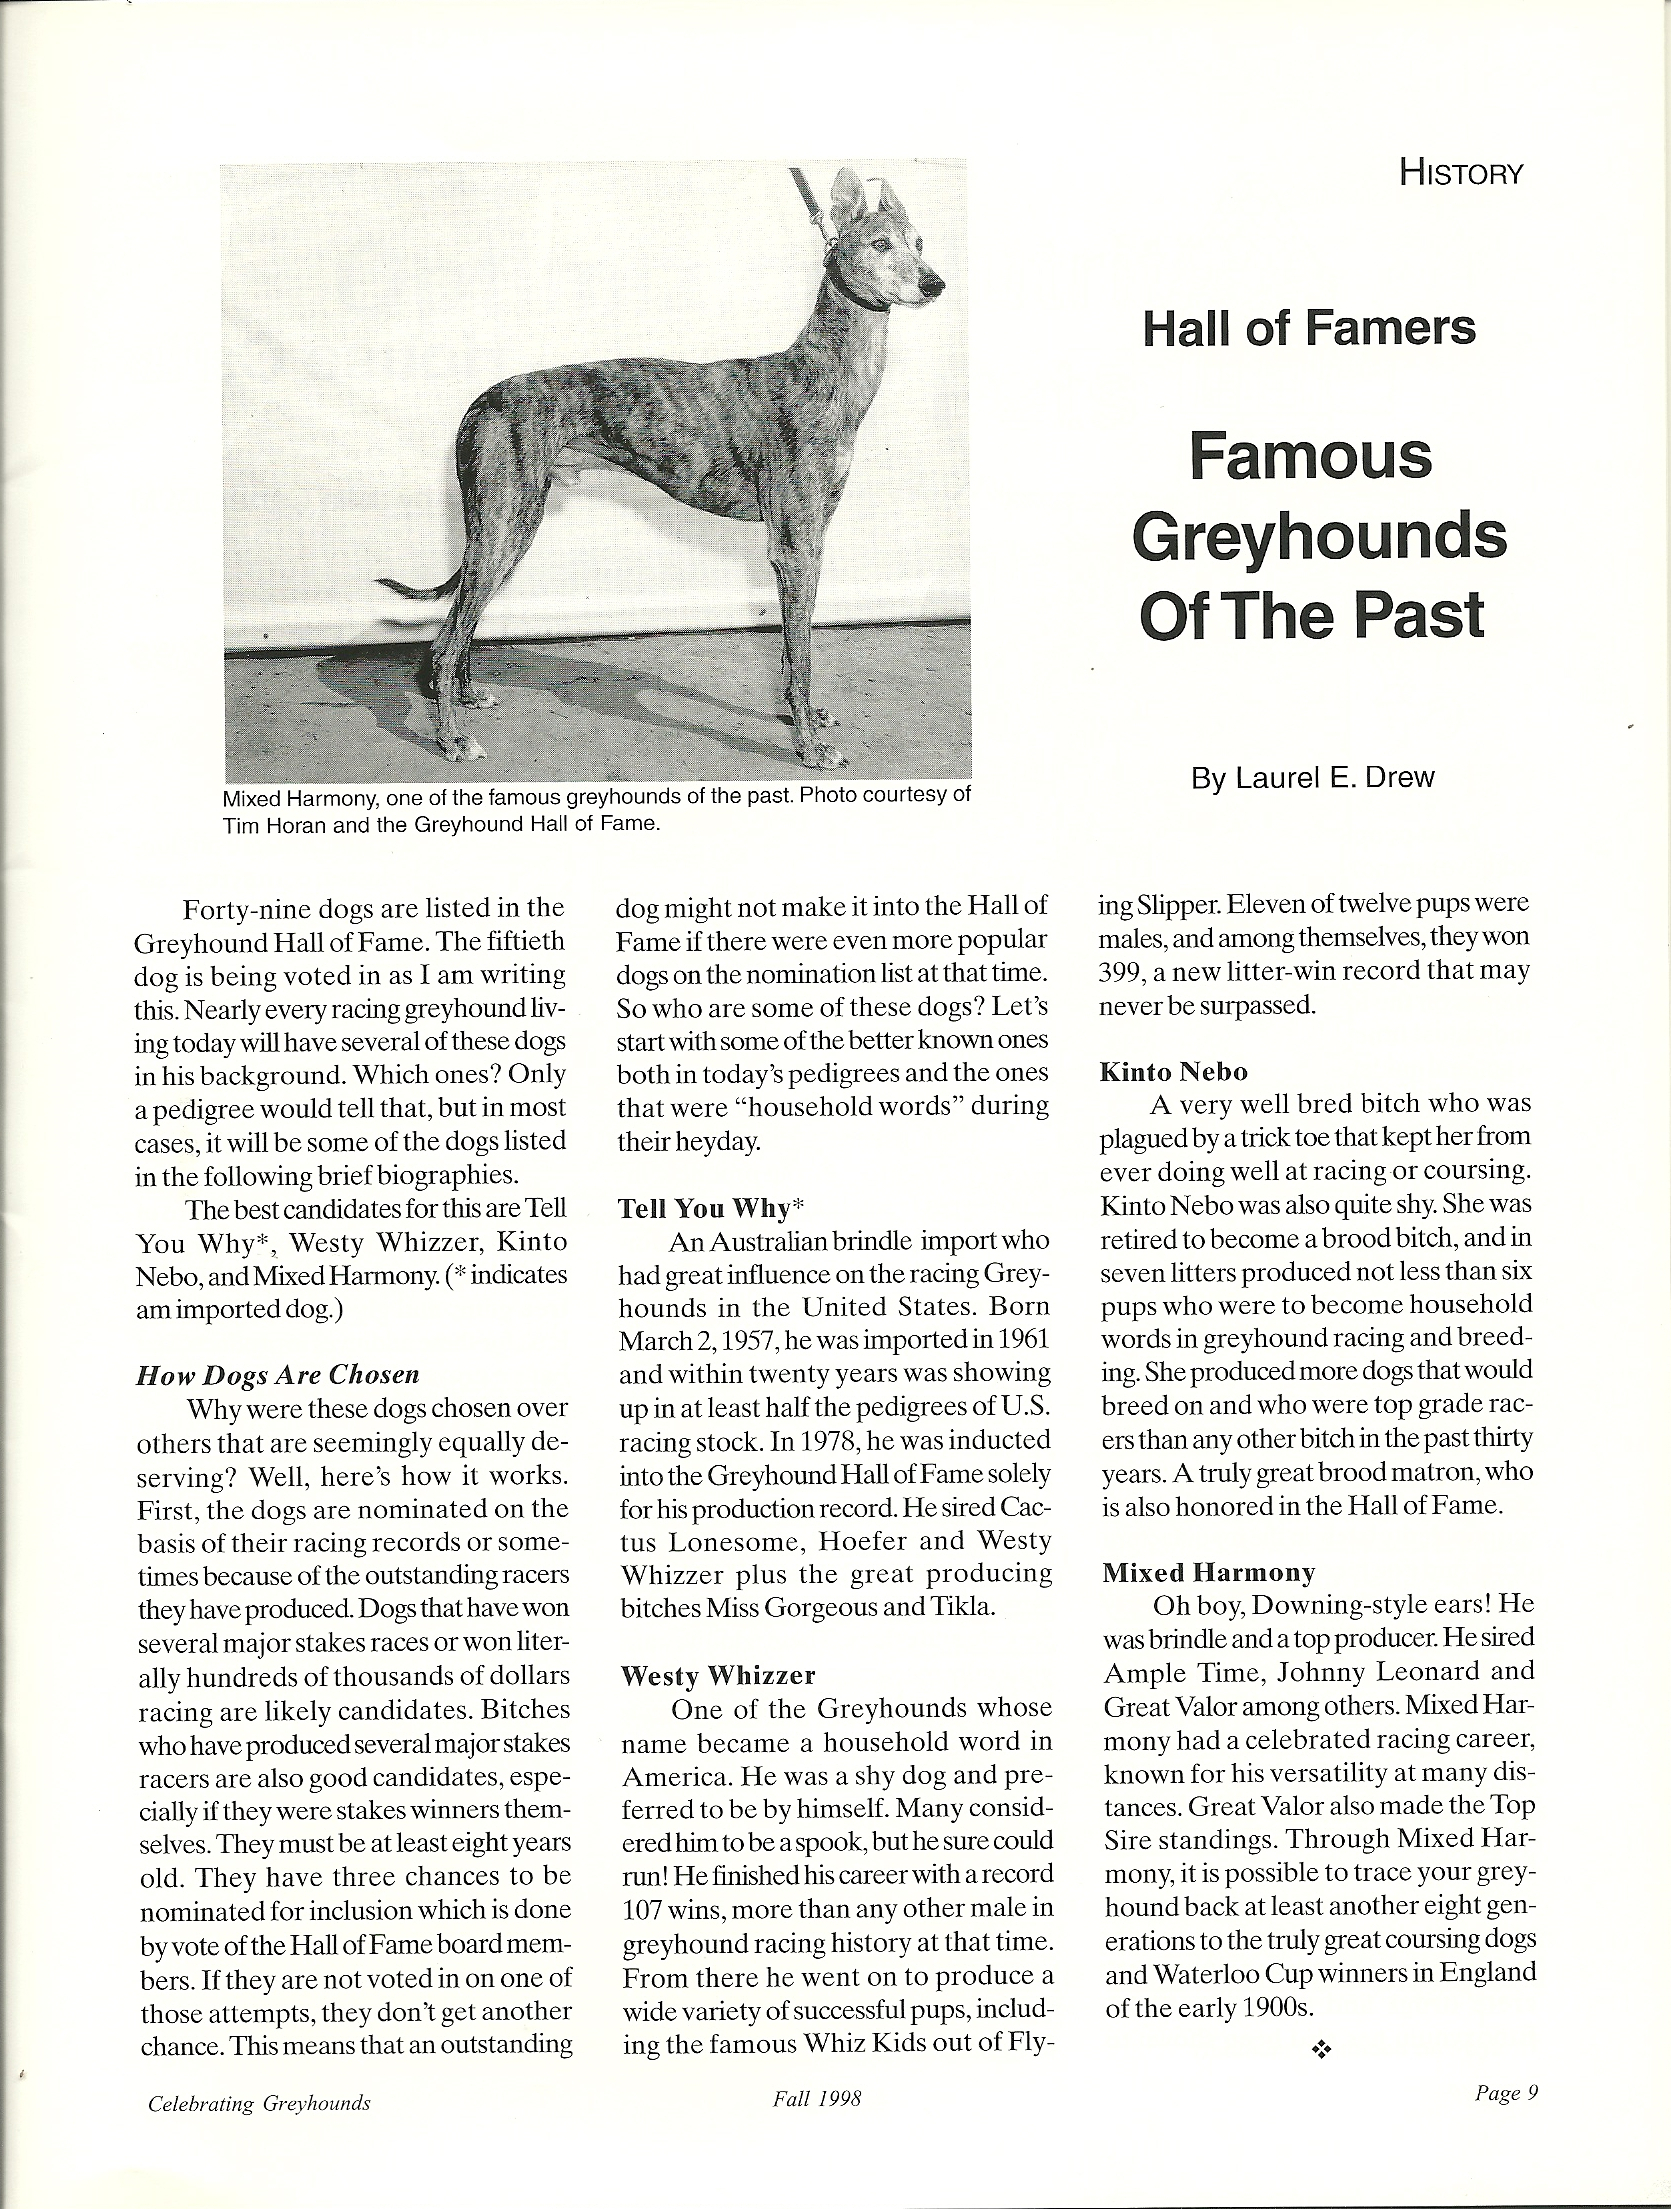 Famous Greyhounds of the Past | Greyhound Articles Online